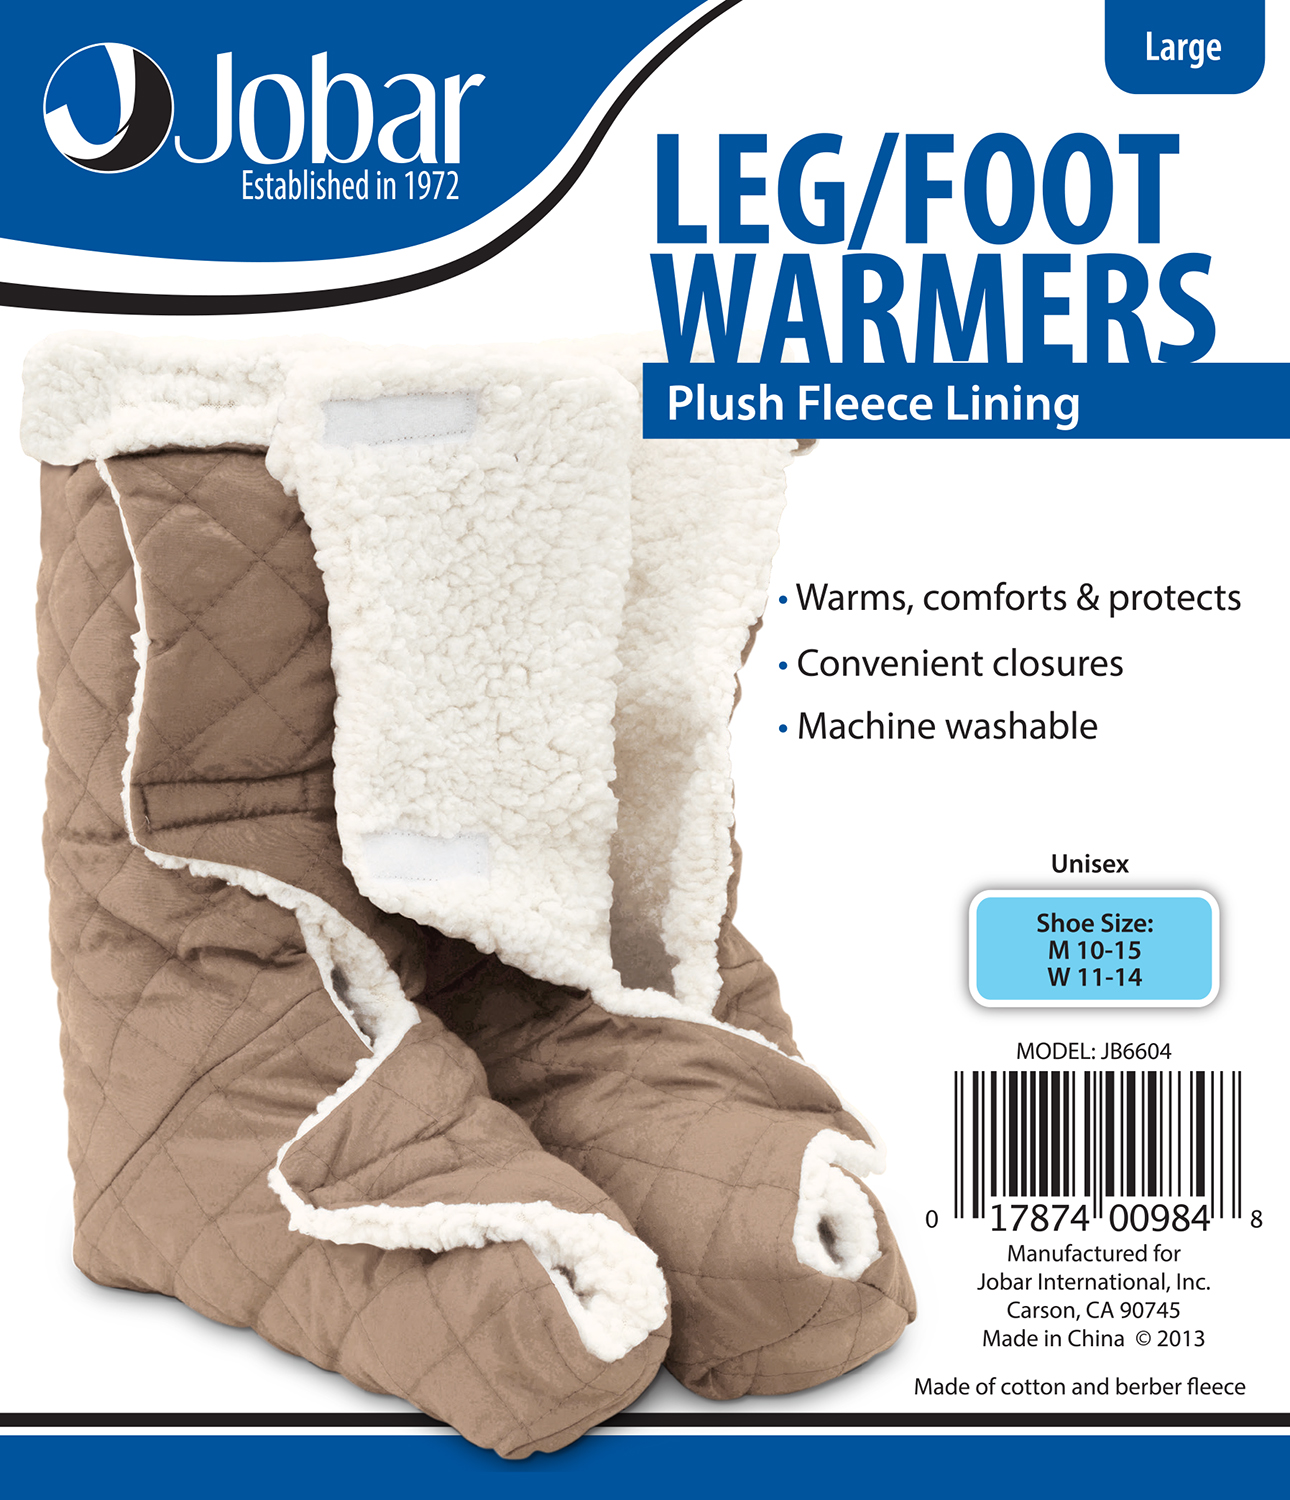 JOBAR JB6604 LARGE LEG AND FOOT WARMERS WITH PLUSH LINING